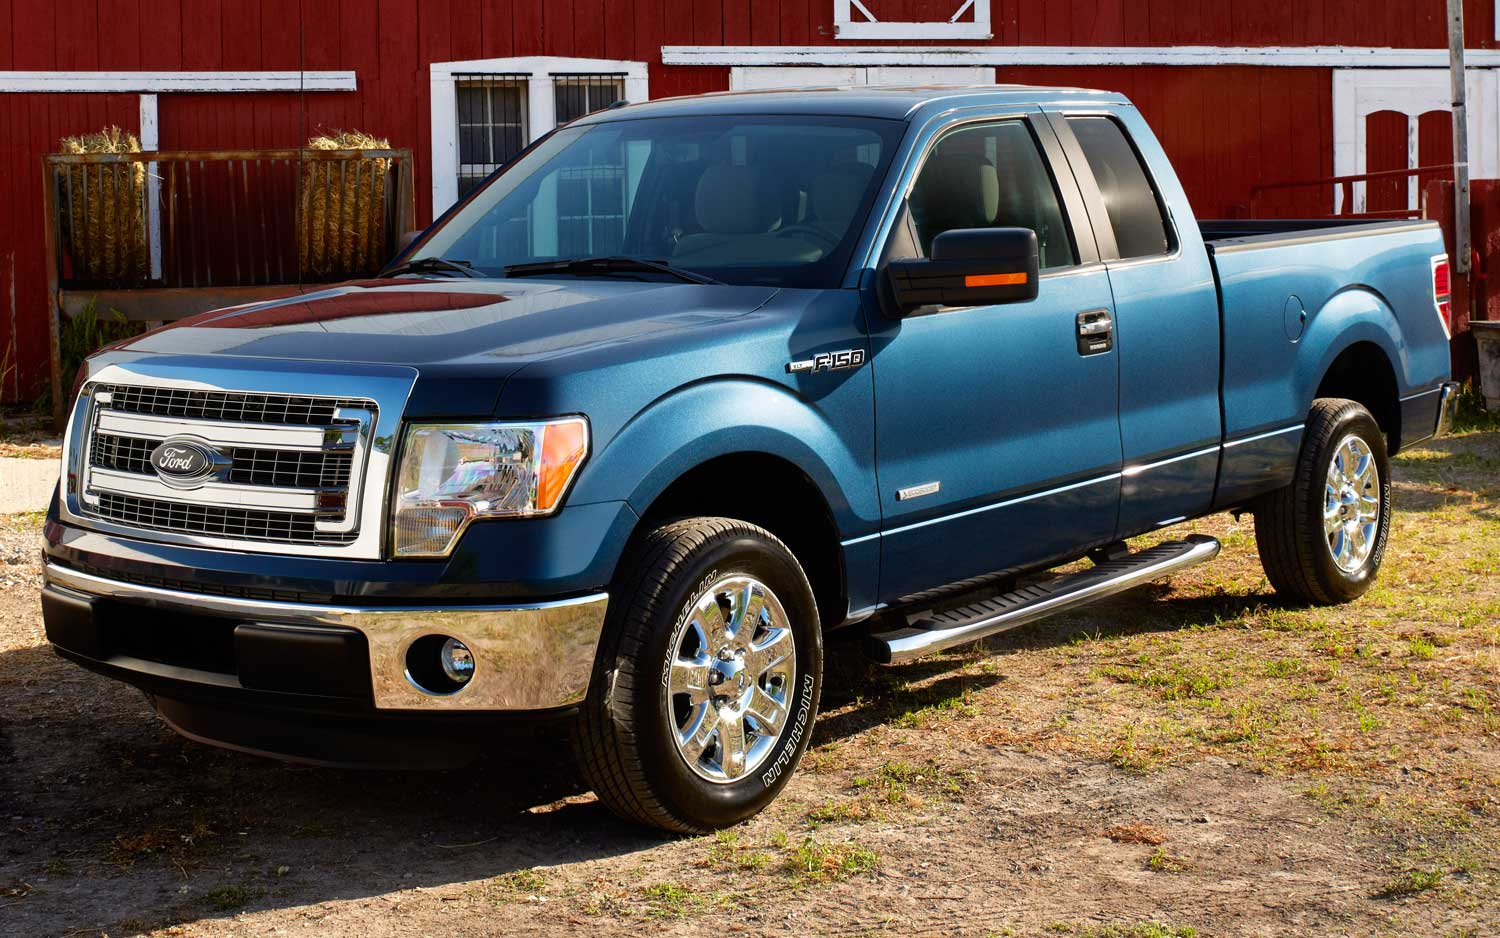 Ford F-150 #19